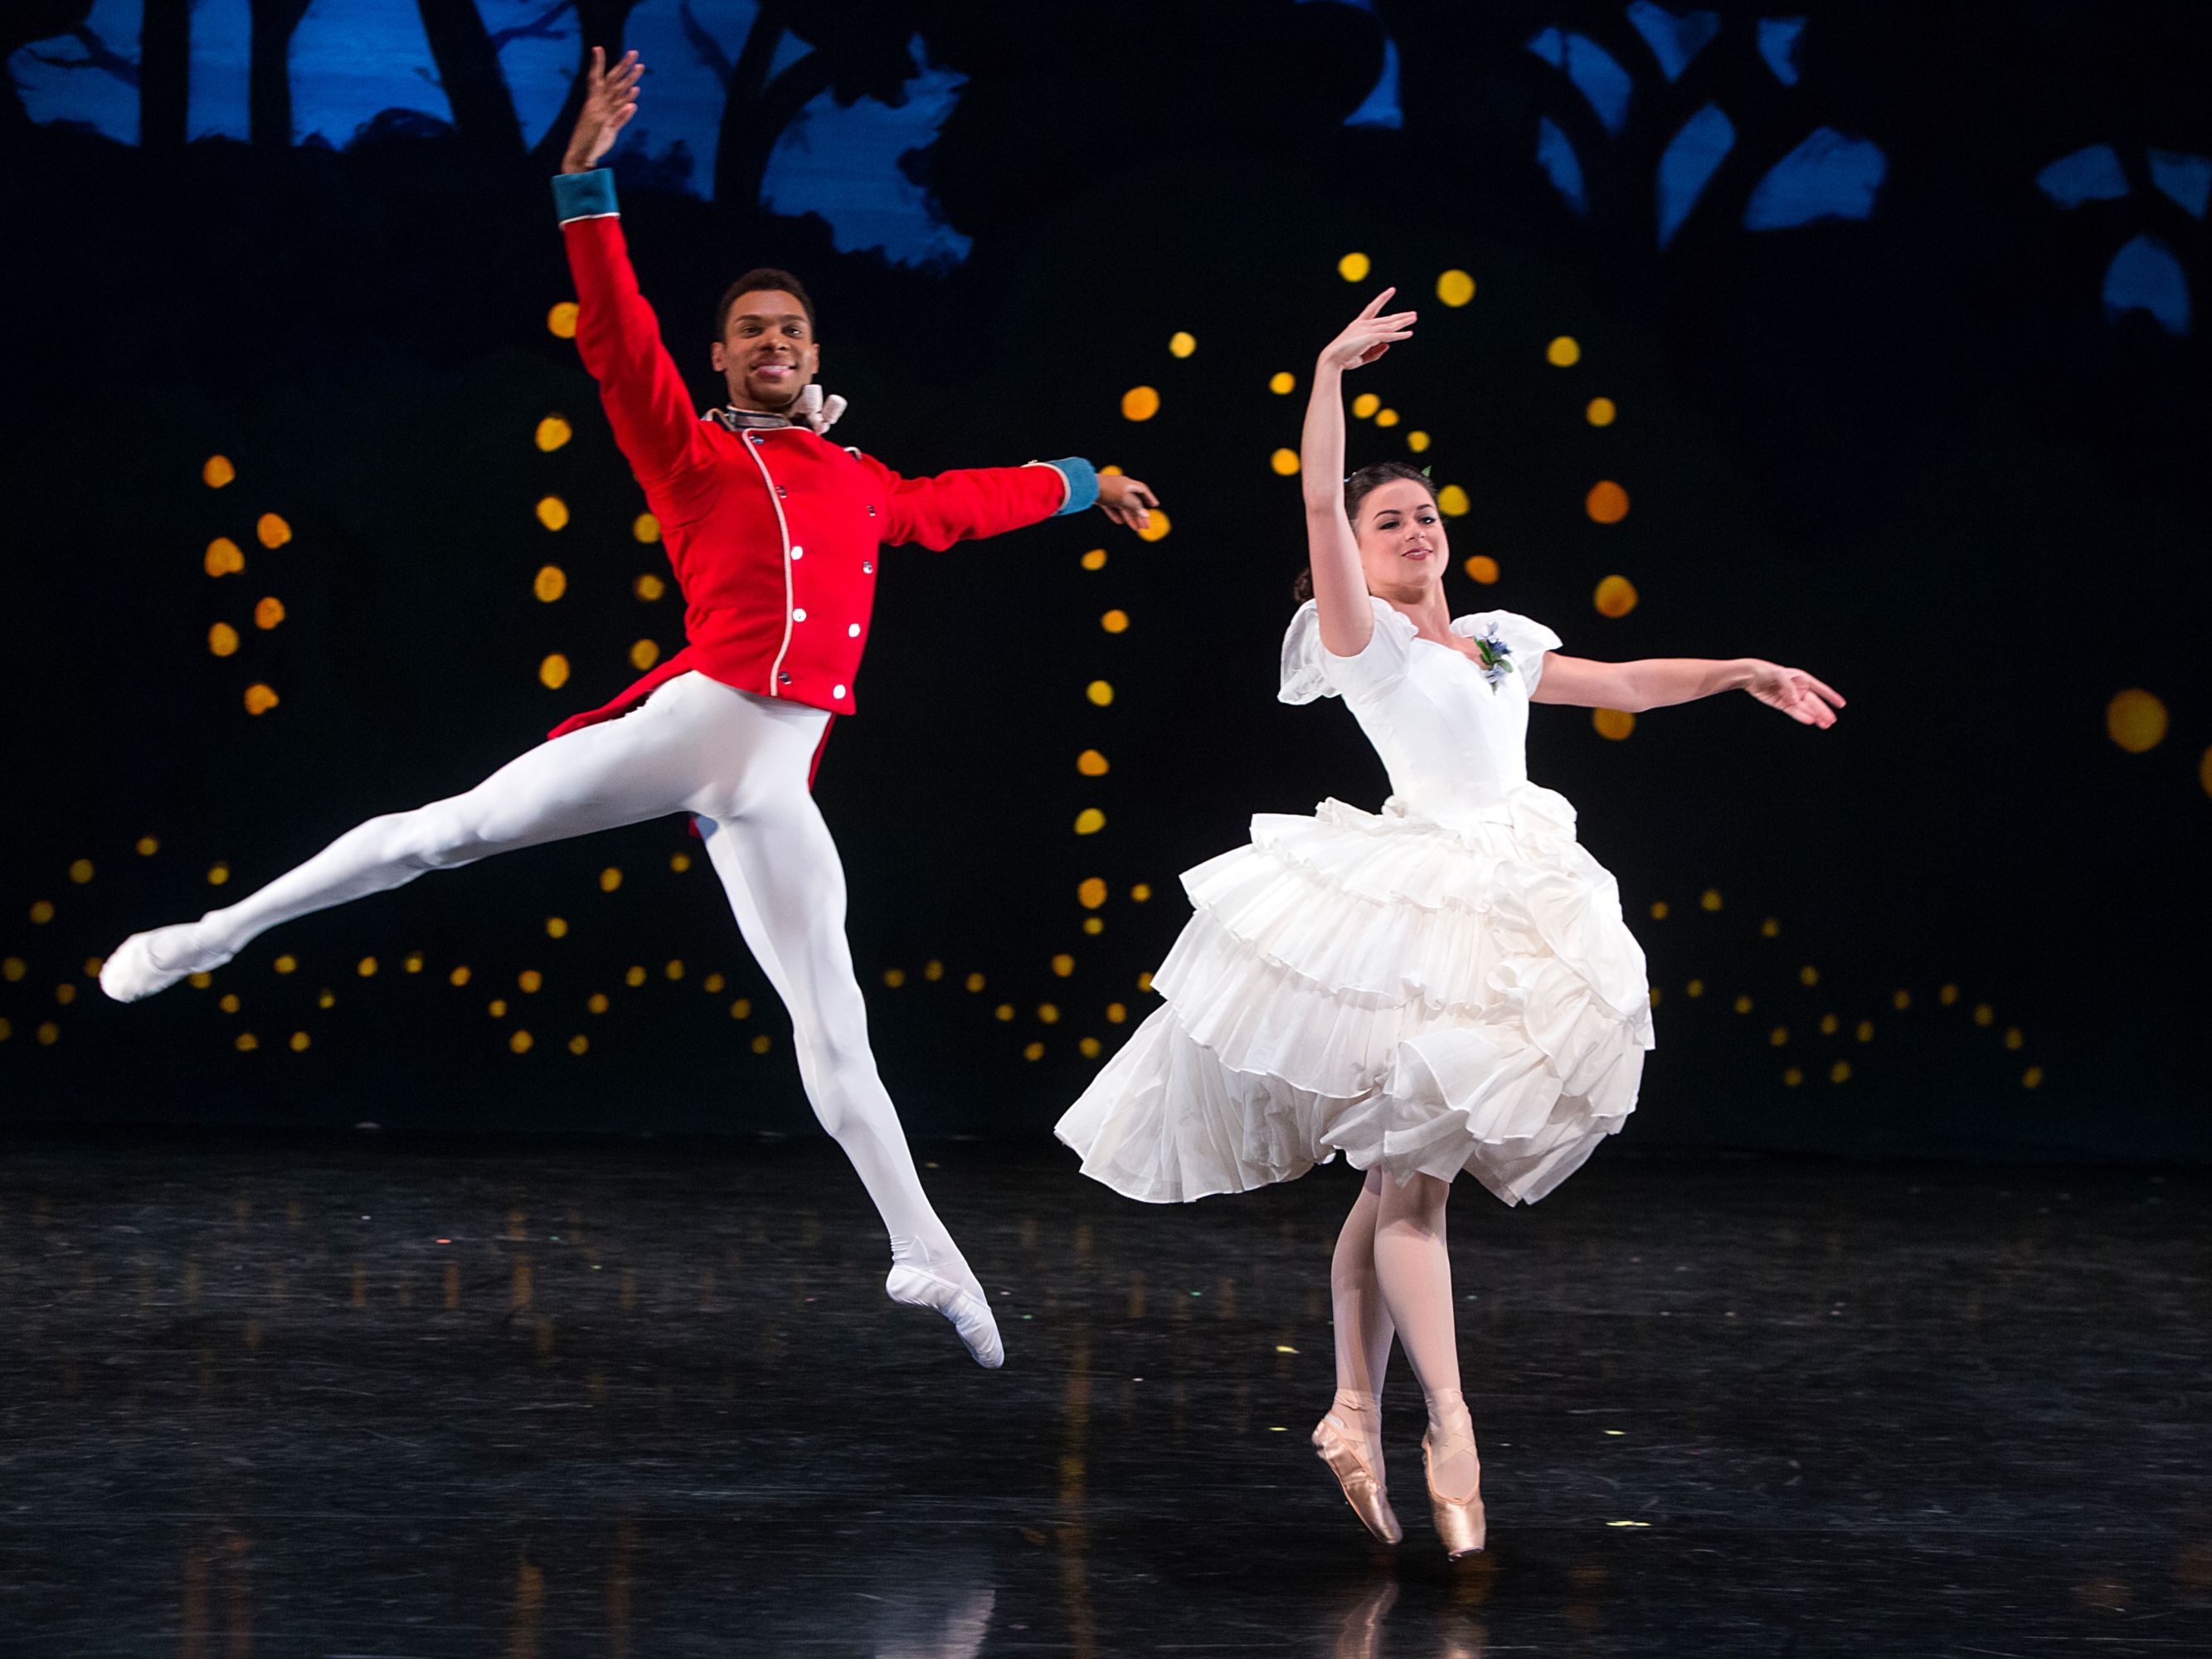 10 Facts And Other Details About The Nutcracker Ballet